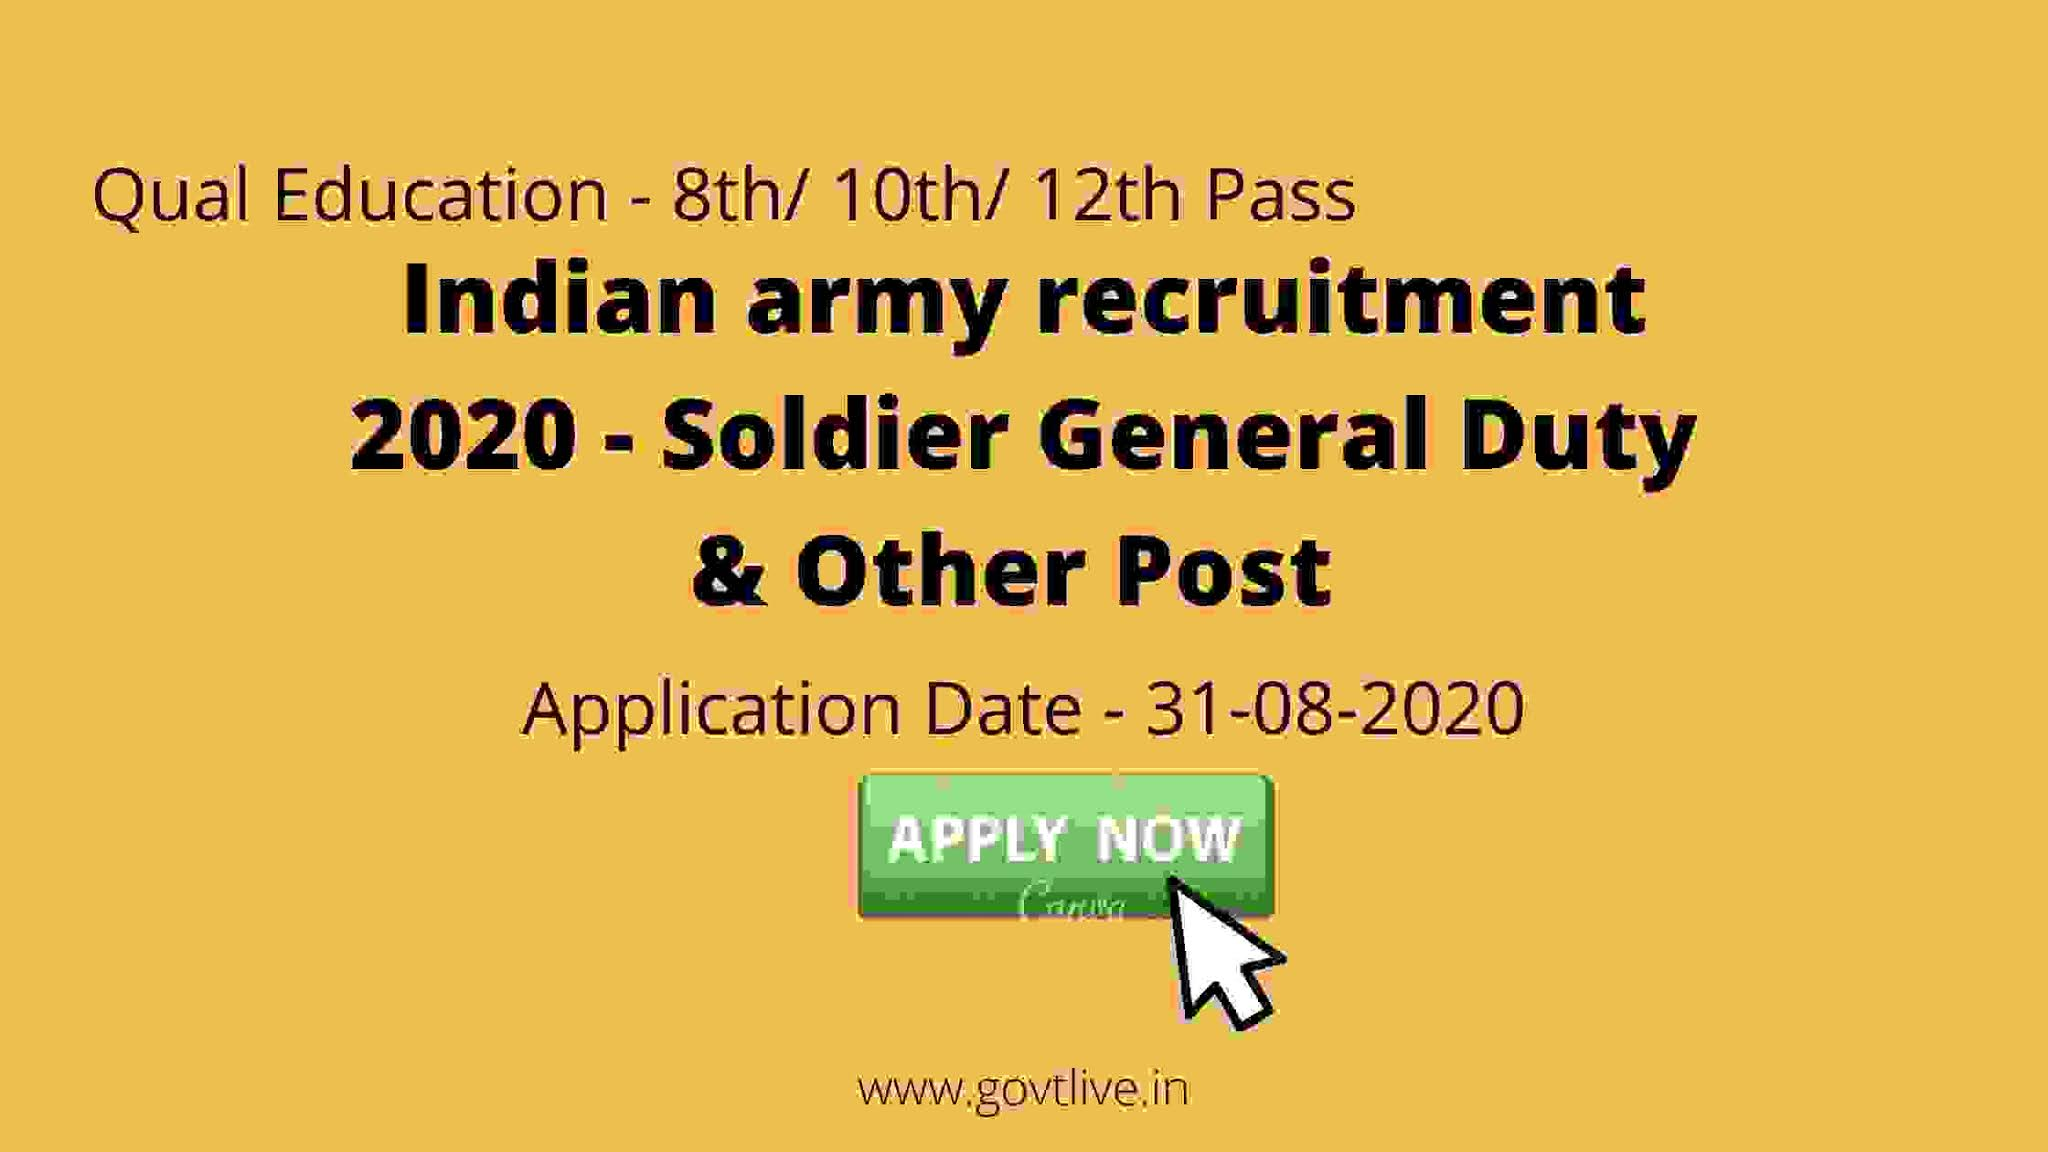 Indian army recruitment 2020 - Soldier General Duty & Other Post